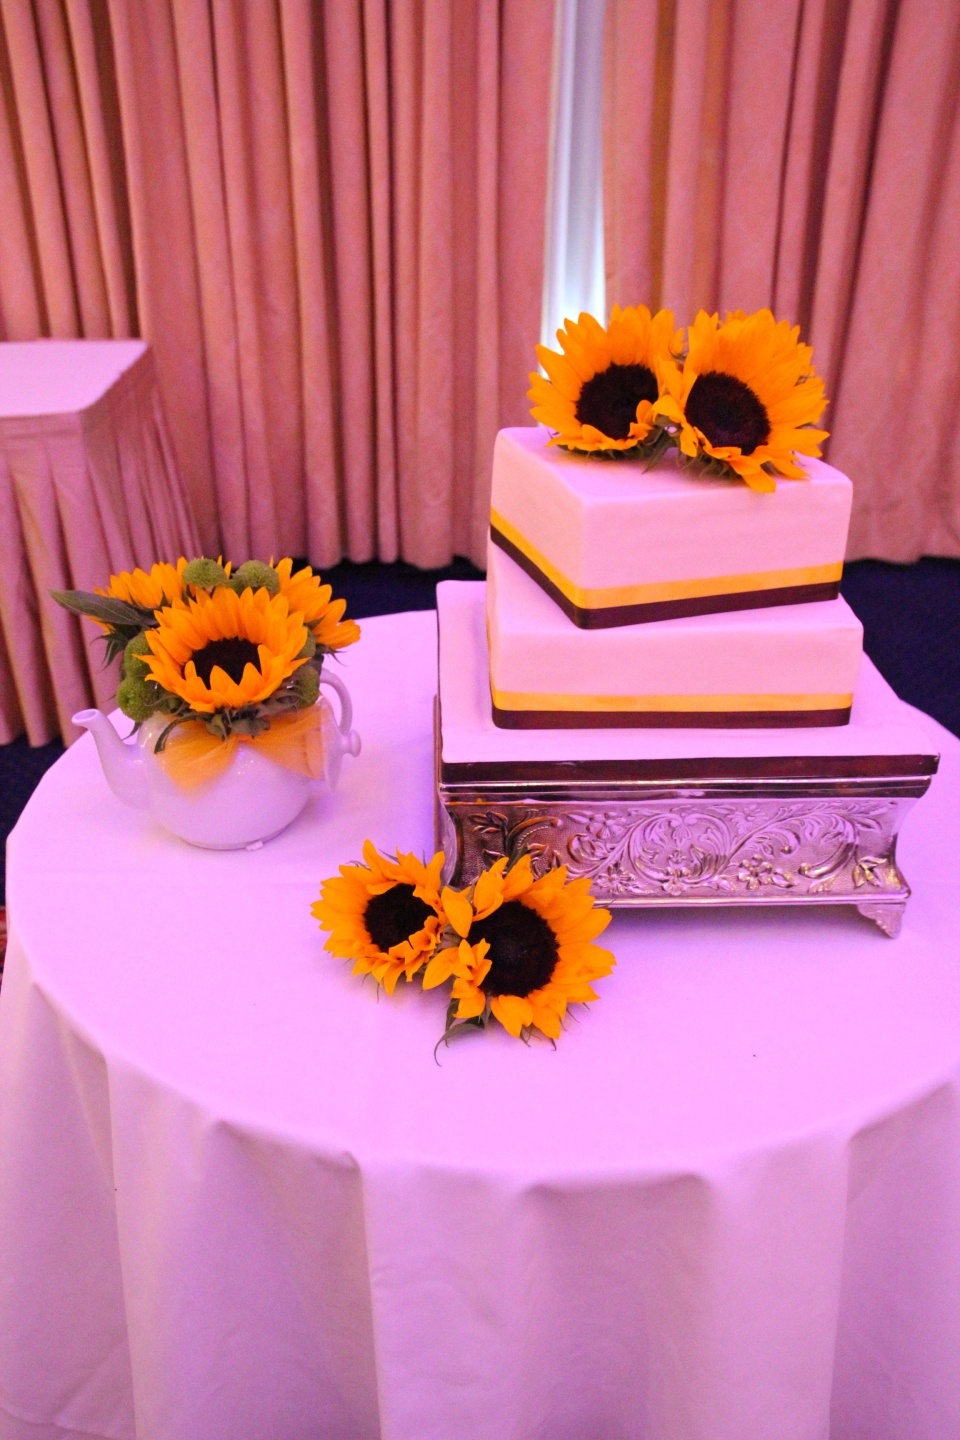 Fresh sunflowers on the cake